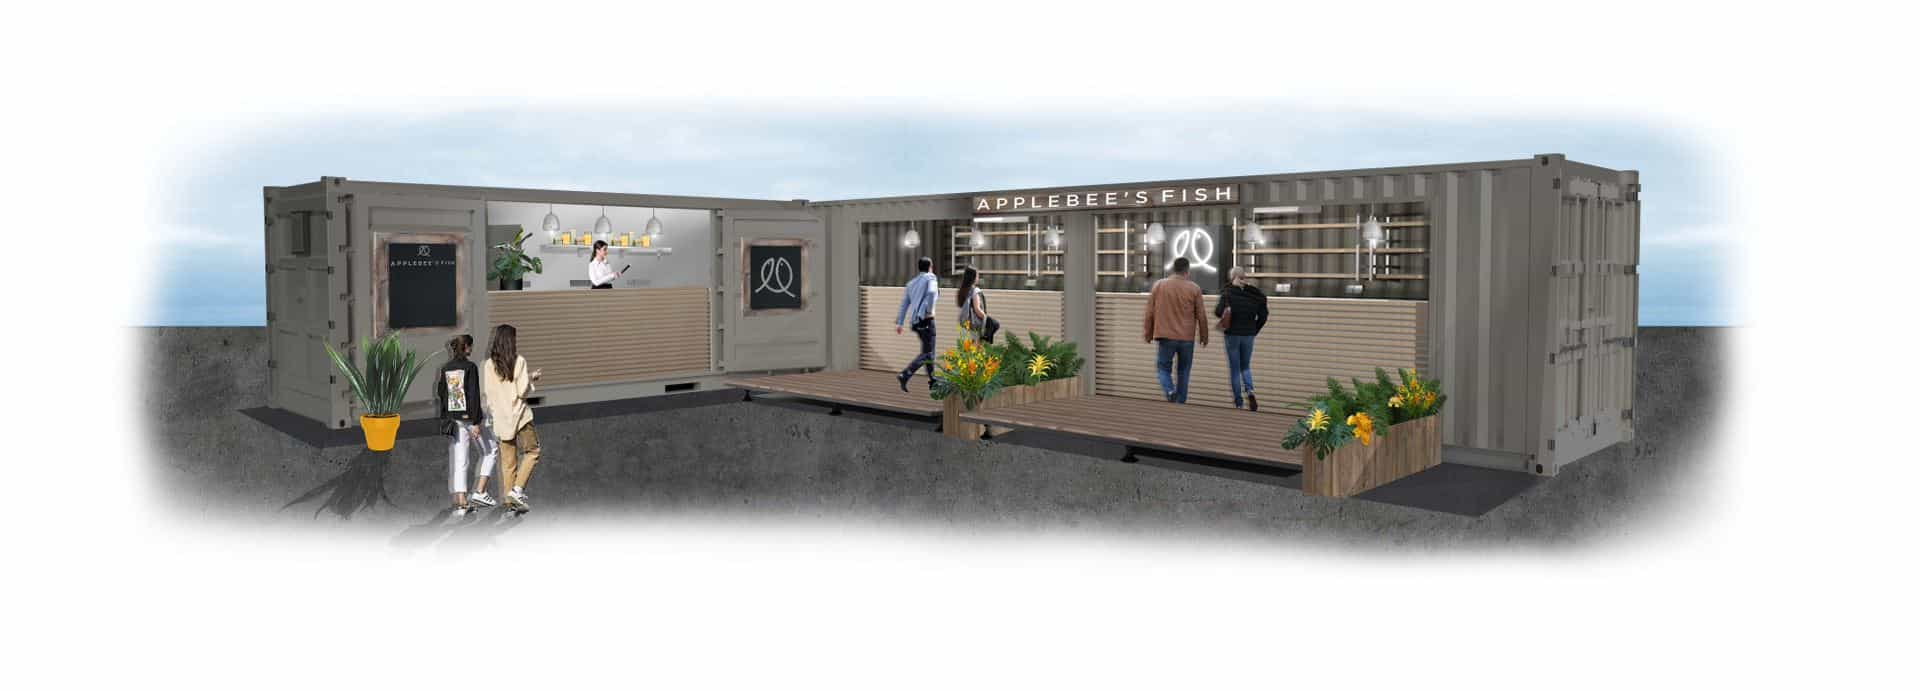 Concept design of a shipping container bar and fish and chip shop